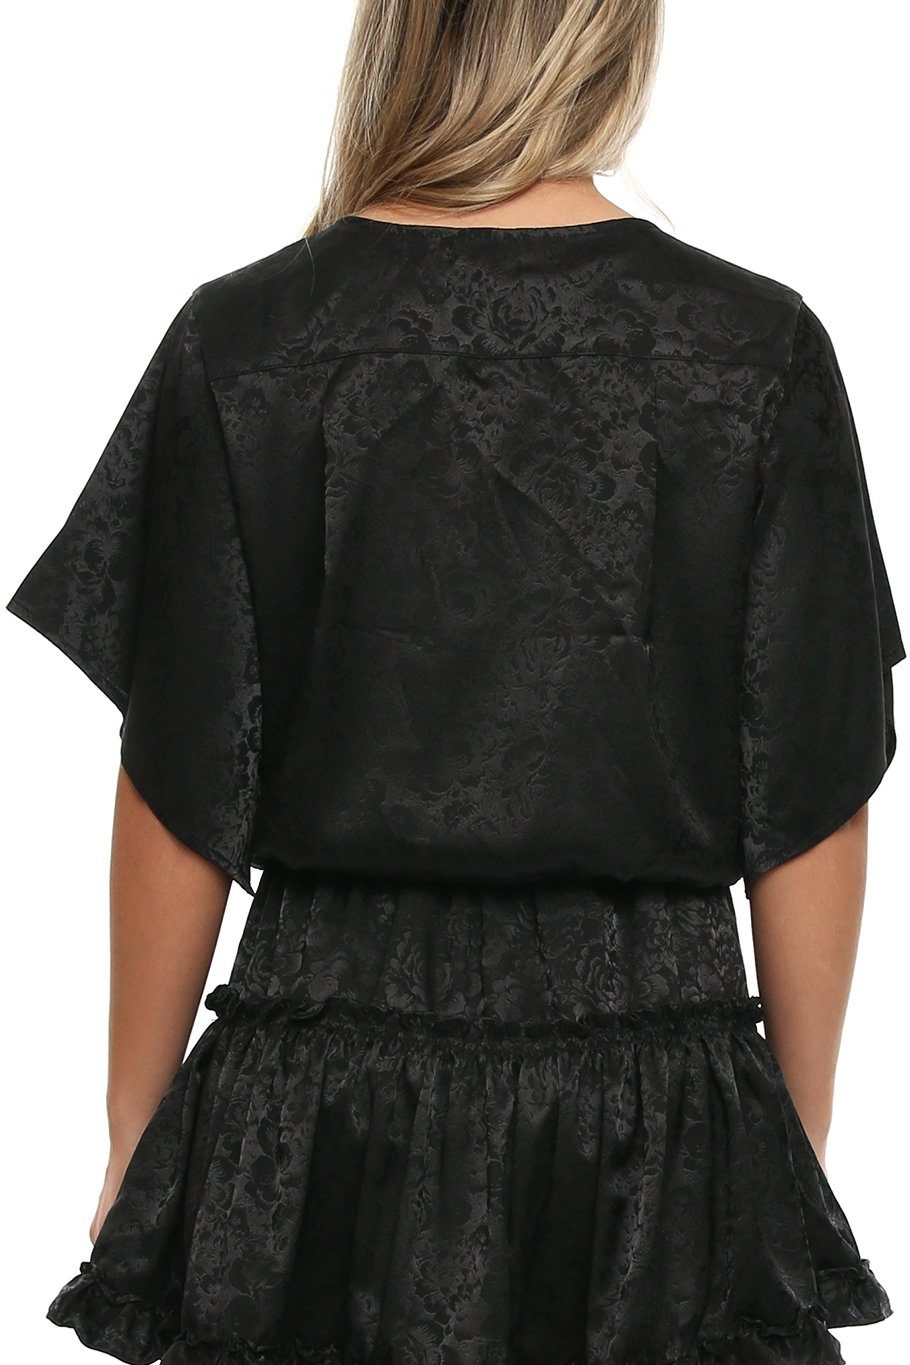 Canary Flutter Sleeve - Black Rose - Shore